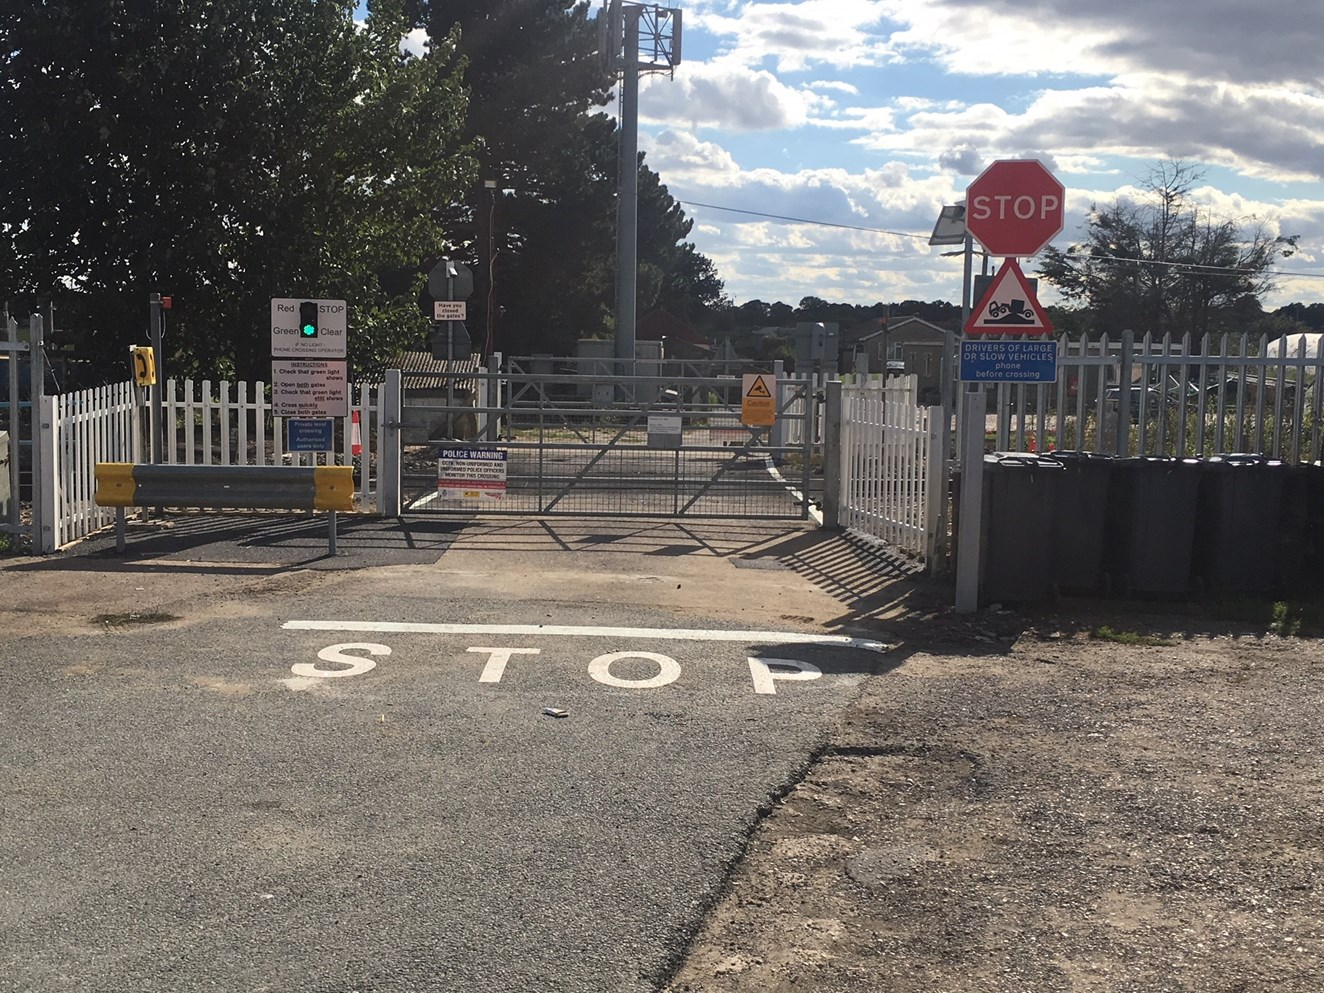 Suffolk level crossing reopens following a serious collision: Routs level crossing ropens